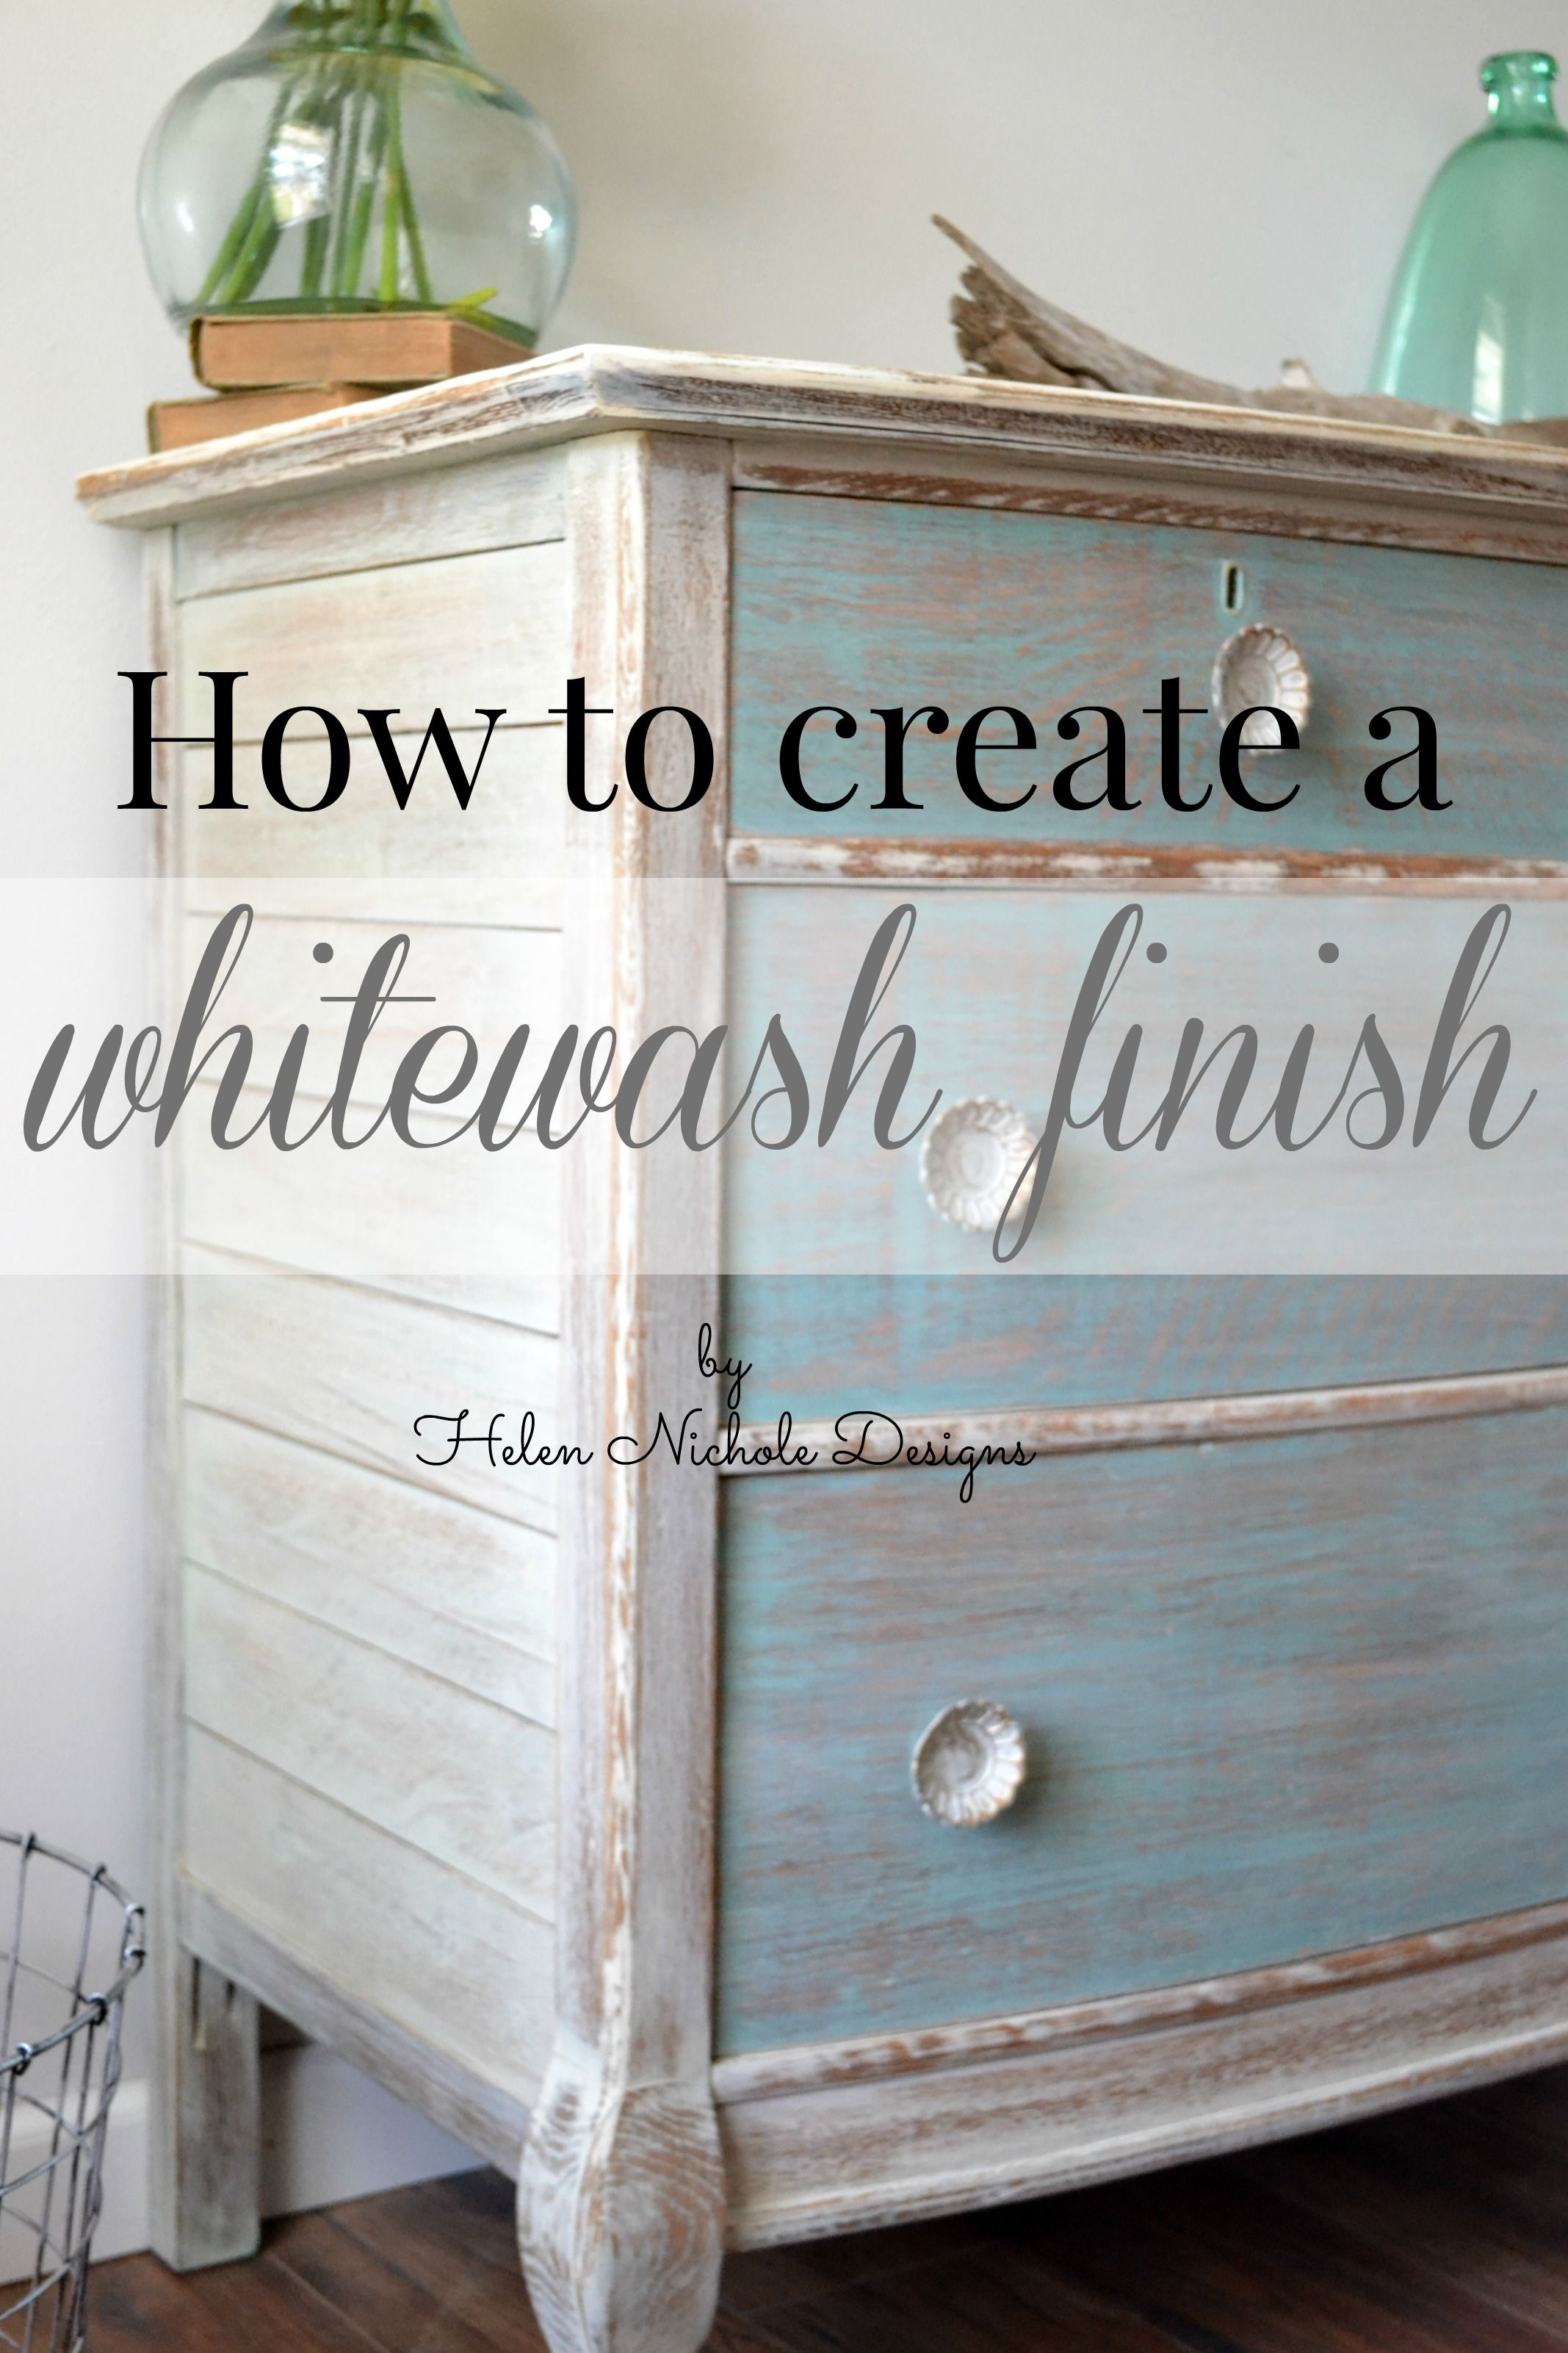 whitewashing furniture with color. How To Whitewash Furniture Helen Nichole Designs Whitewashing With Color Pinterest